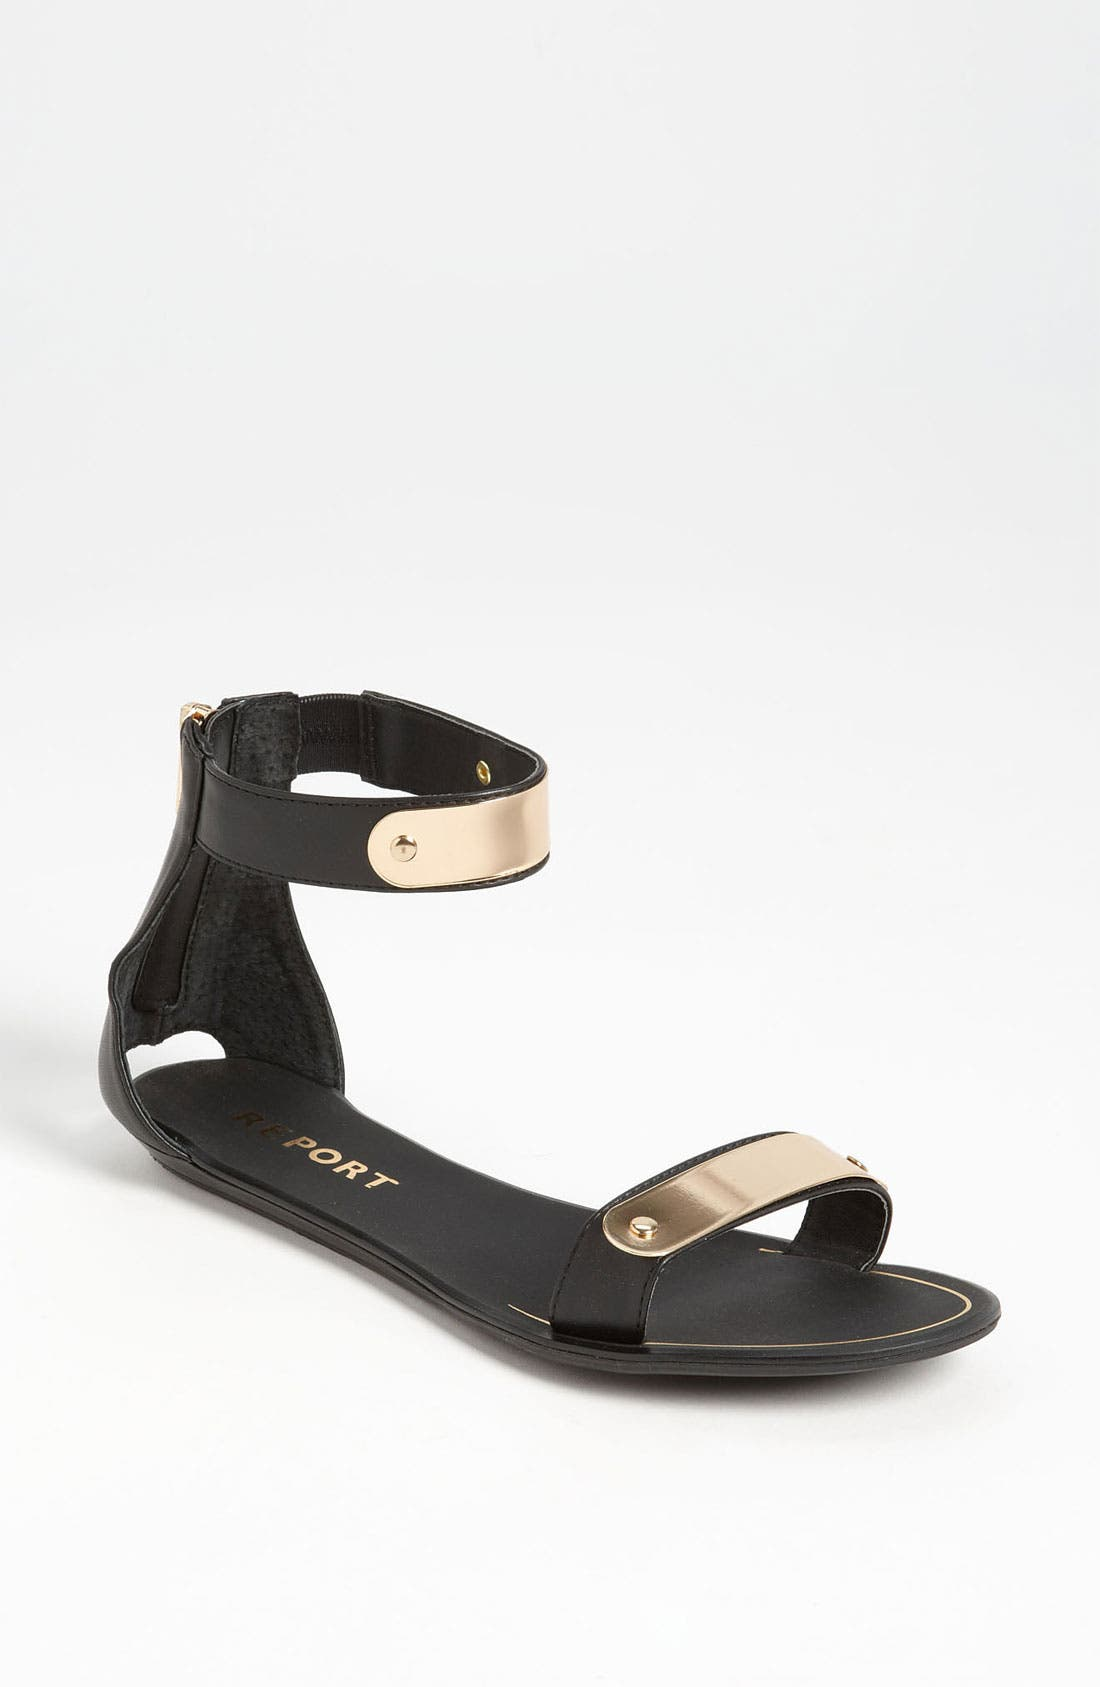 REPORT SIGNATURE, REPORT Metal Bar Sandal, Main thumbnail 1, color, 001